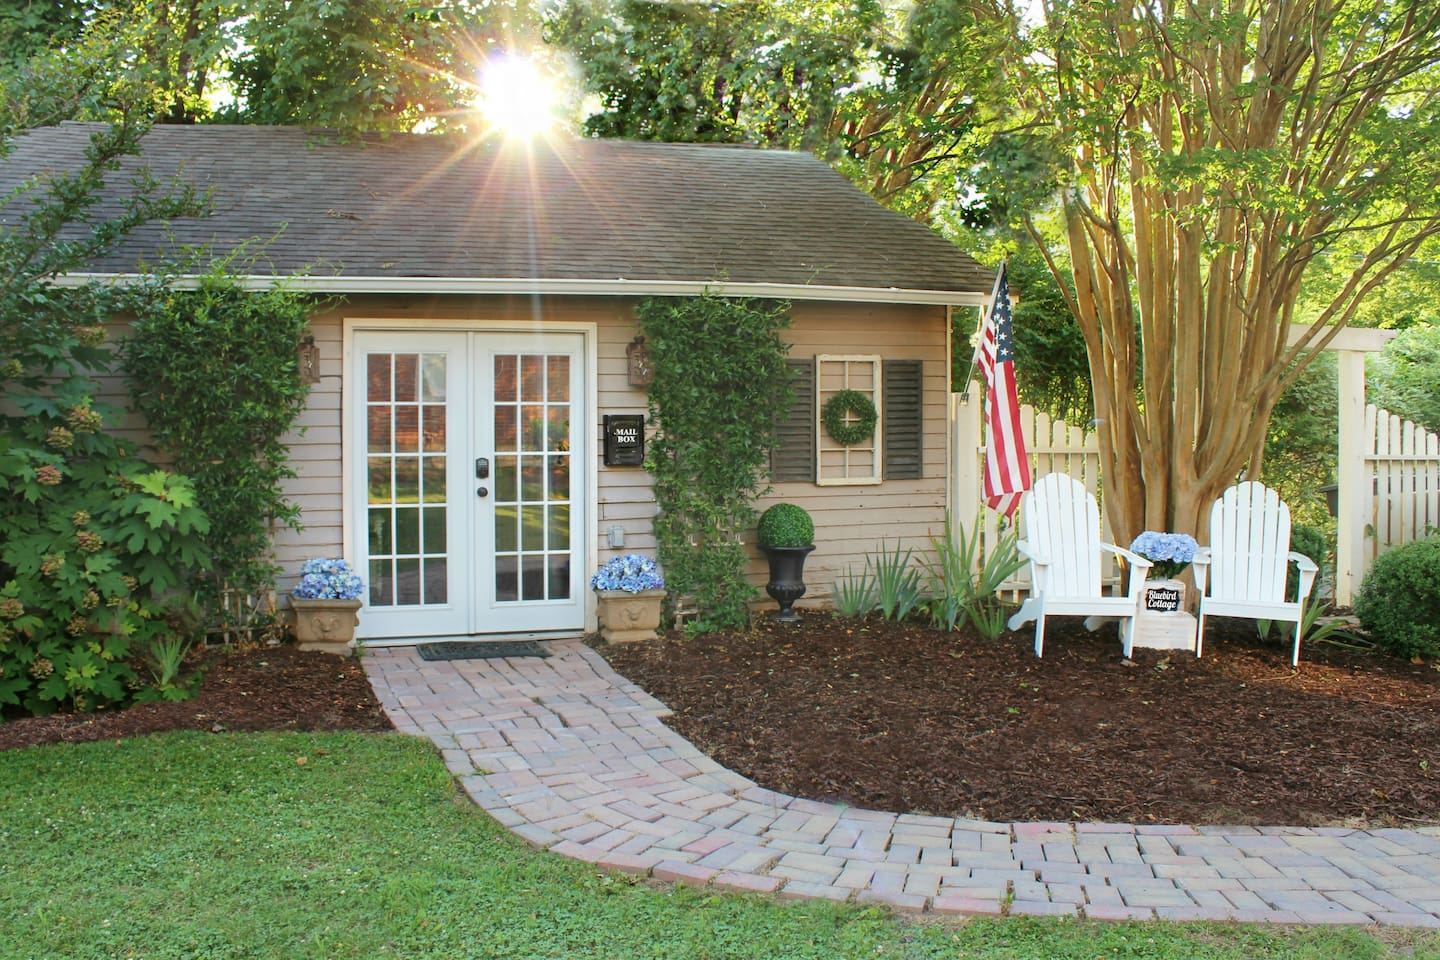 Welcome to the Bluebird Cottage! The name is inspired by the famous Bluebird Cafe in Nashville where so many country music stars have been discovered...and of course because of the bluebirds that are always bathing in our birdbath...